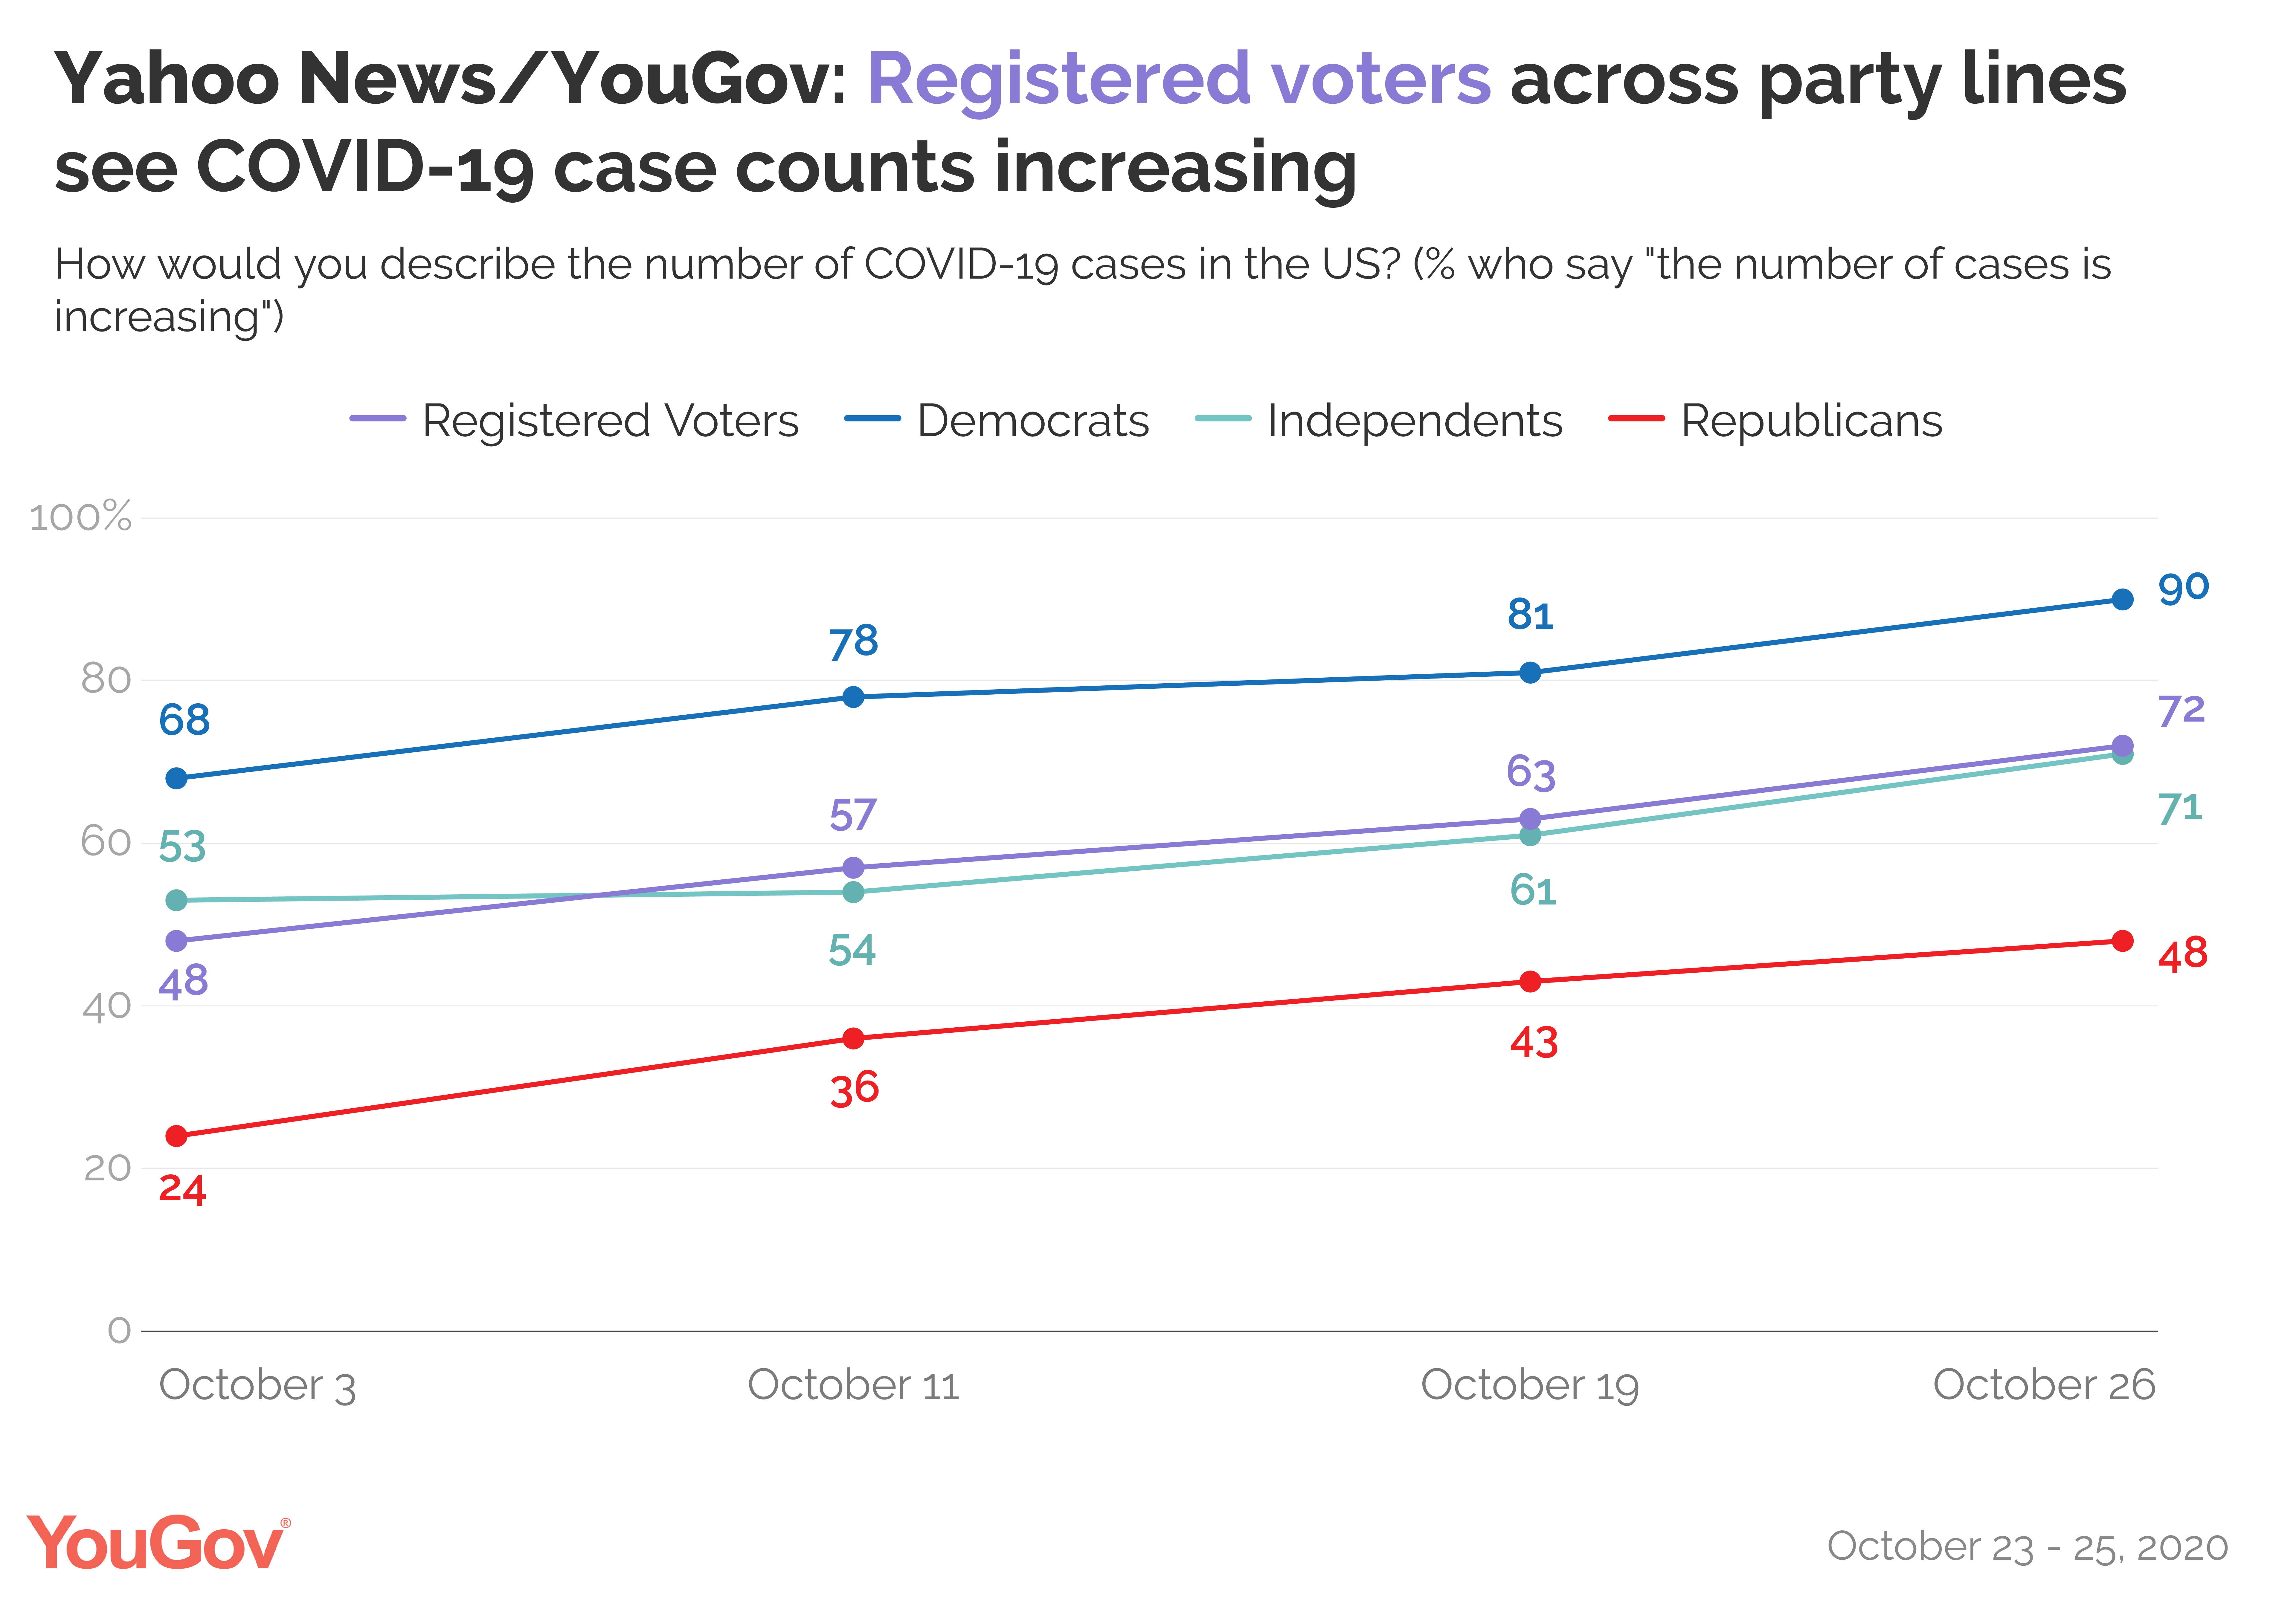 Yahoo News/YouGov: Registered voters across party lines see COVID-19 case counts increasing